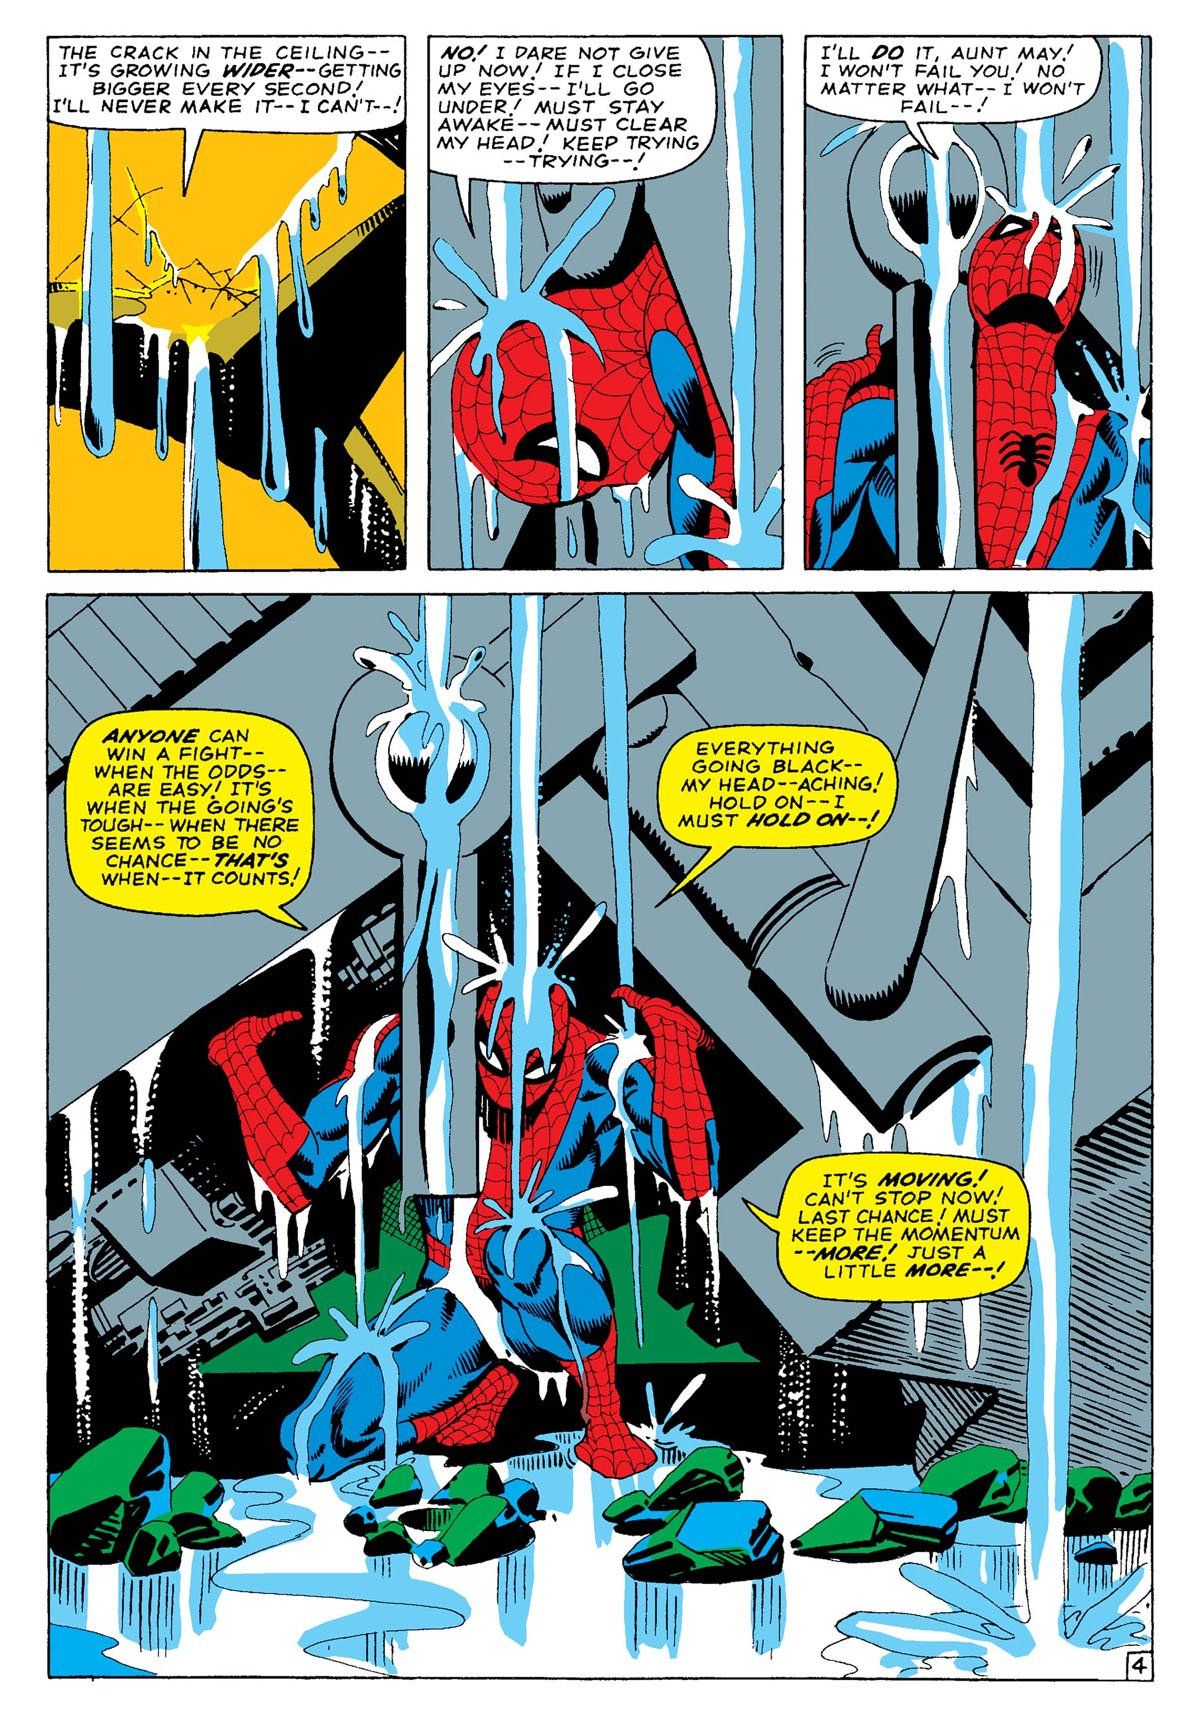 8: If This Be My Destiny – Amazing Spider-Man #31-33